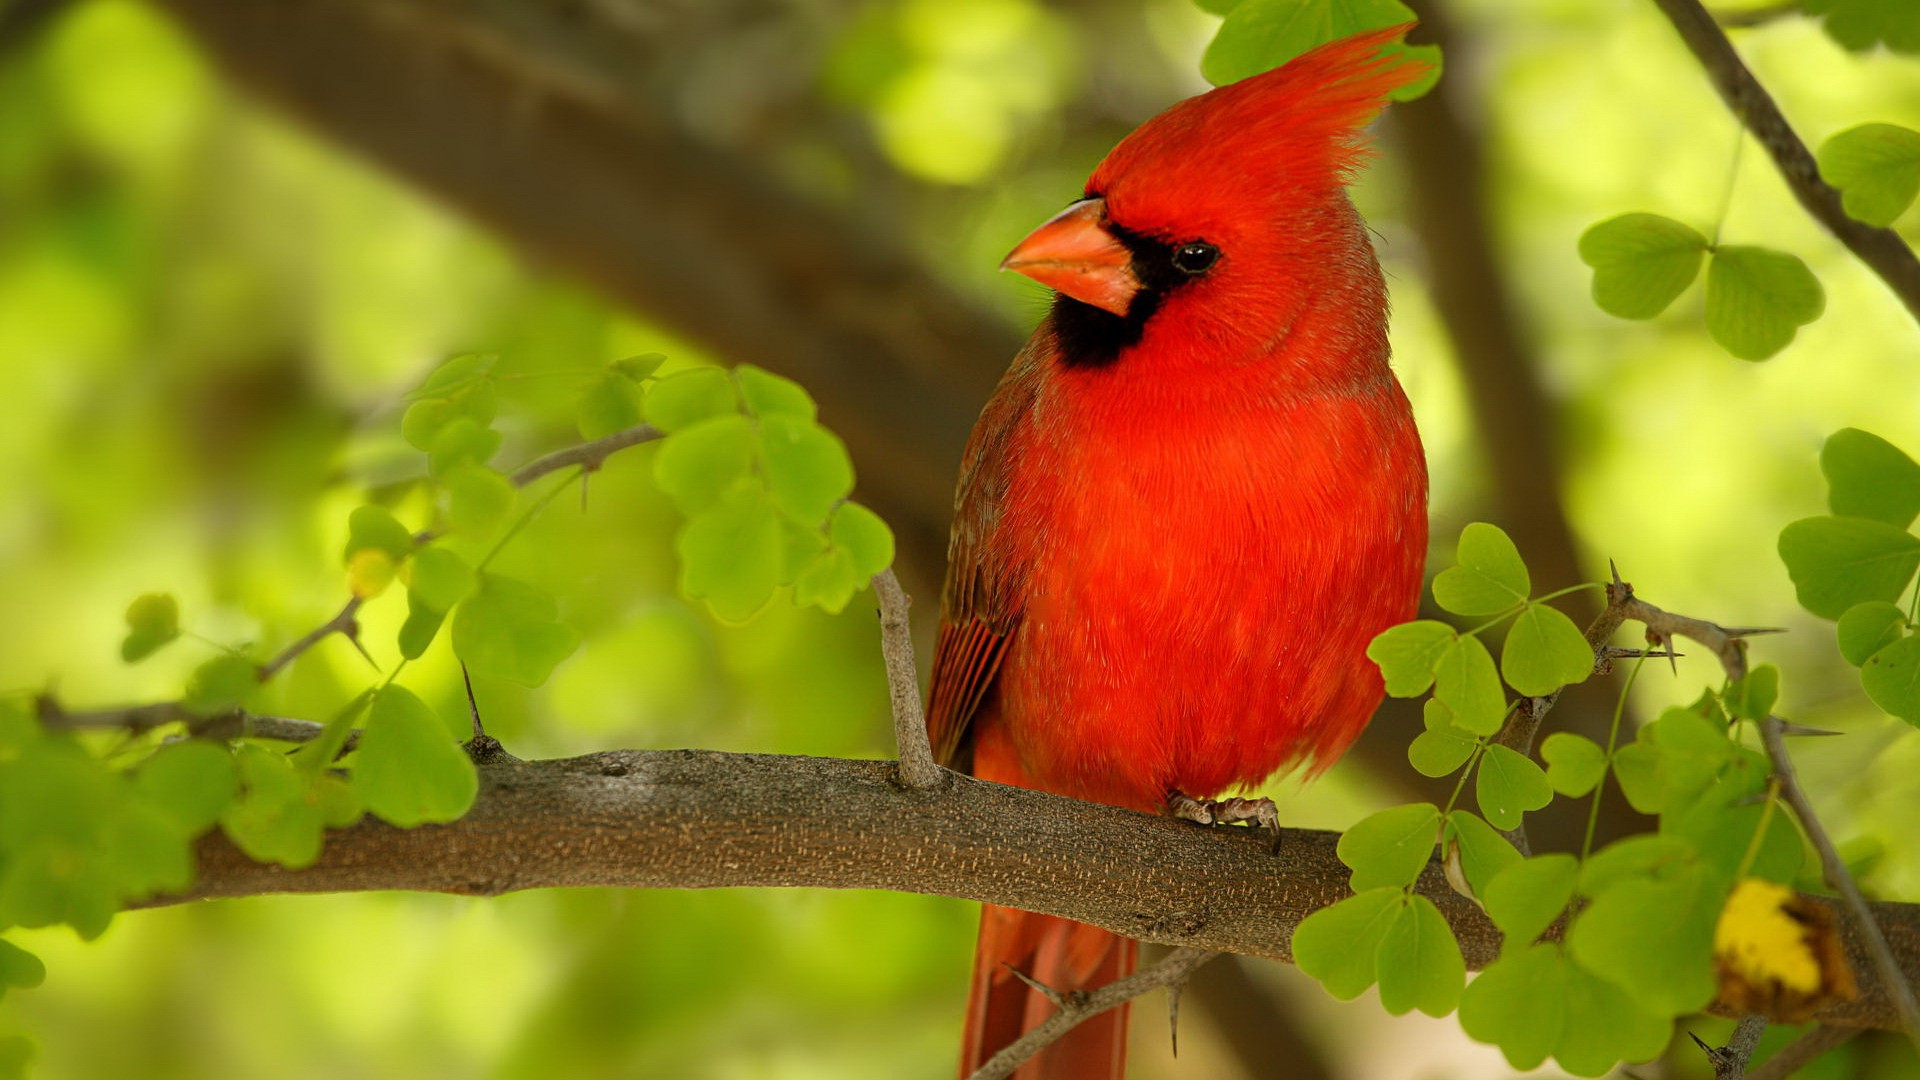 Free Download Red Bird Hd 1080p Wallpapers Download Hd Wallpapers Source 1920x1080 For Your Desktop Mobile Tablet Explore 49 Bird Hd Wallpaper Angry Bird Wallpaper Hd Parrot Wallpaper Angry